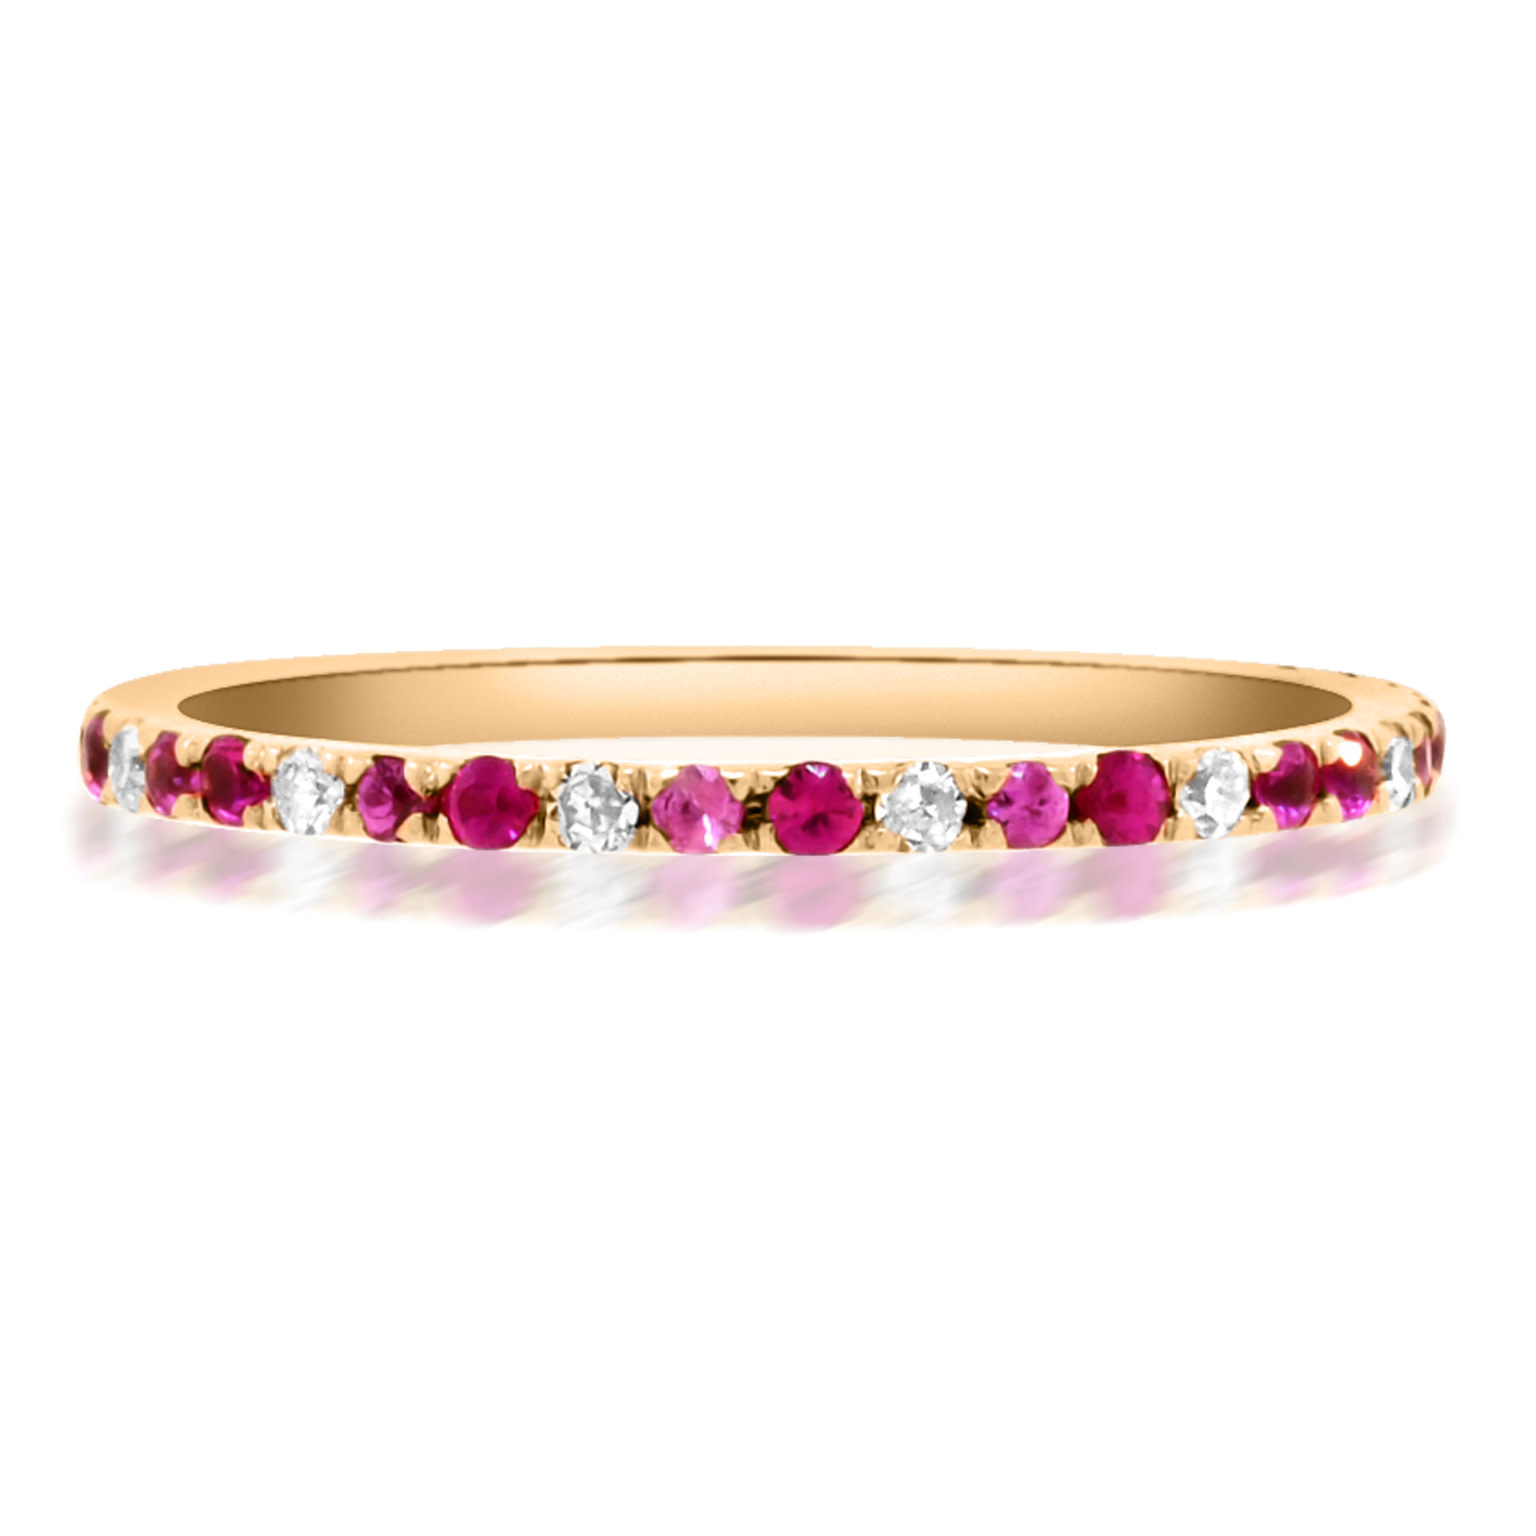 Trabert Goldsmiths Pink Sapphire and Ruby Delicate Eternity Ring